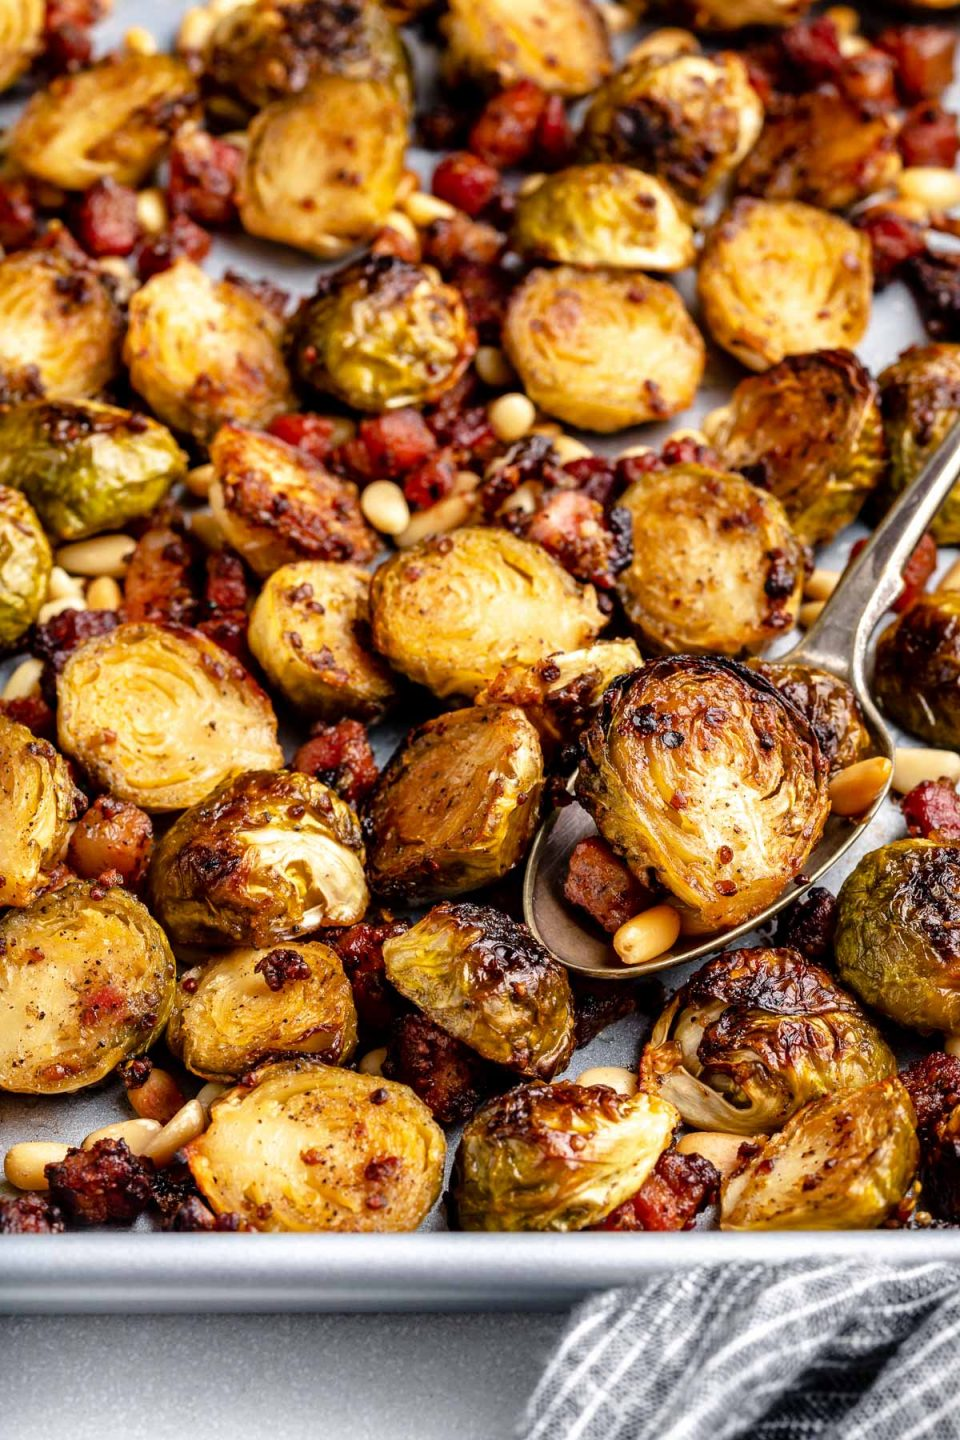 Close view of maple mustard roasted brussels sprouts with pancetta & pine nuts on a large baking sheet. The baking sheet sits atop a light blue surface next to a striped blue linen napkin.